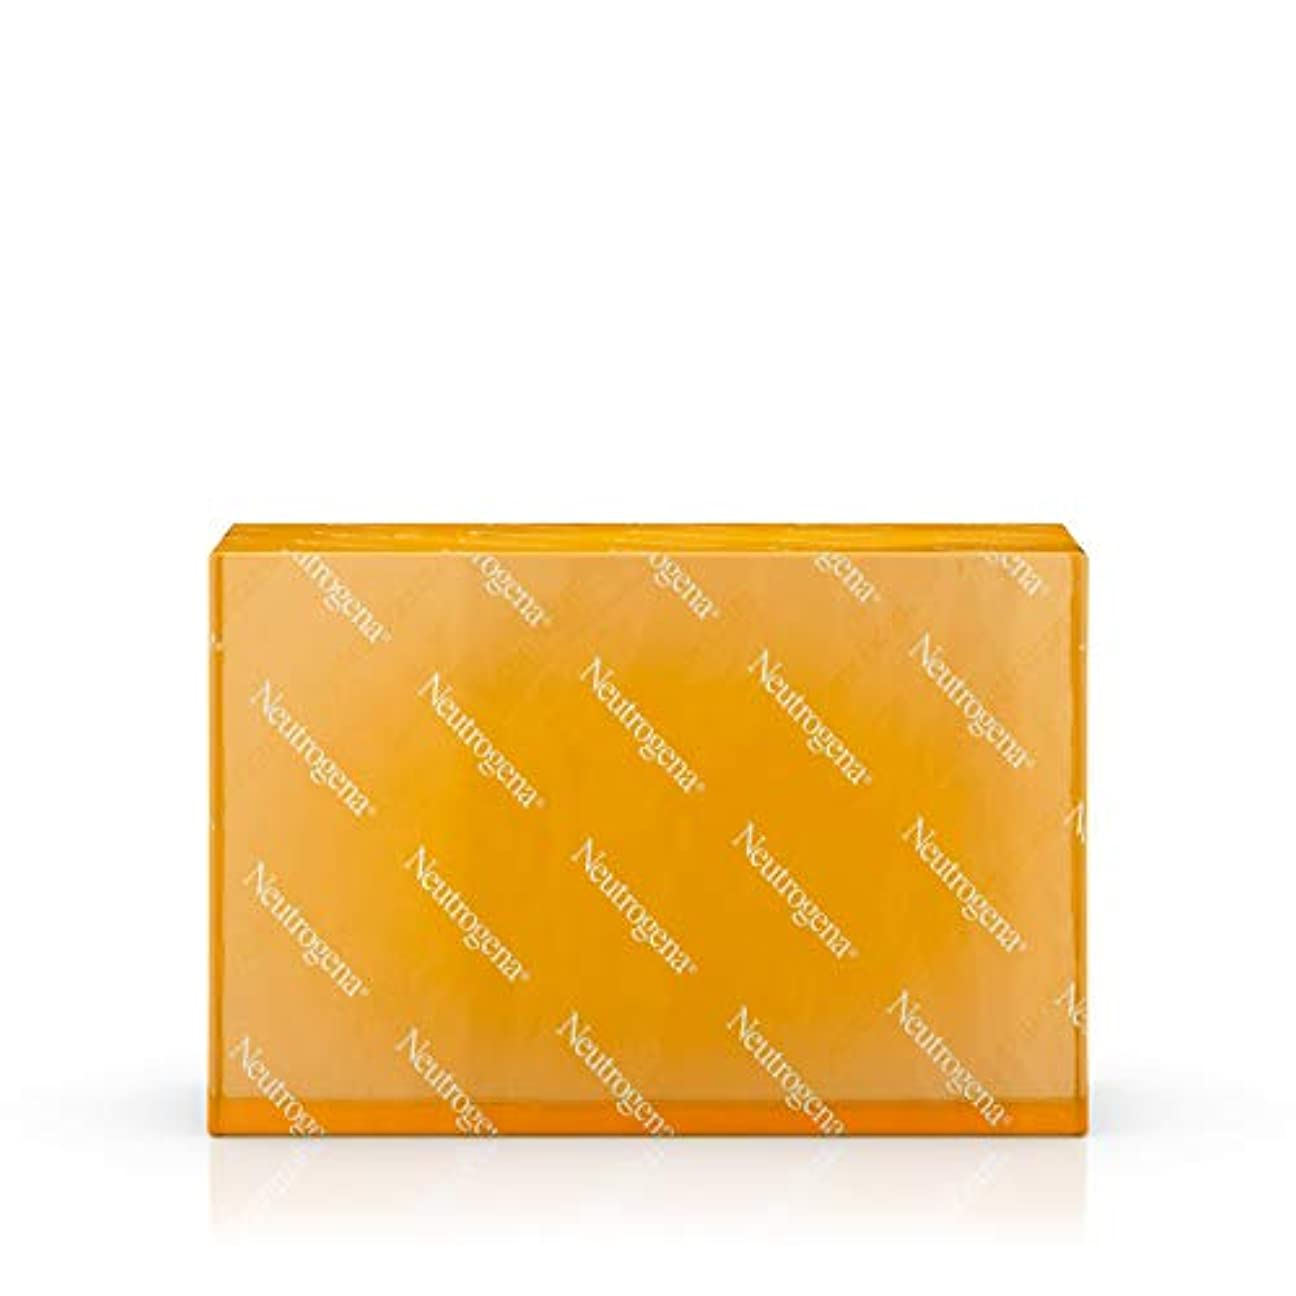 感謝する検体細菌海外直送品 Neutrogena Neutrogena Transparent Facial Bar Soap Fragrance Free, Fragrance Free 3.5 oz